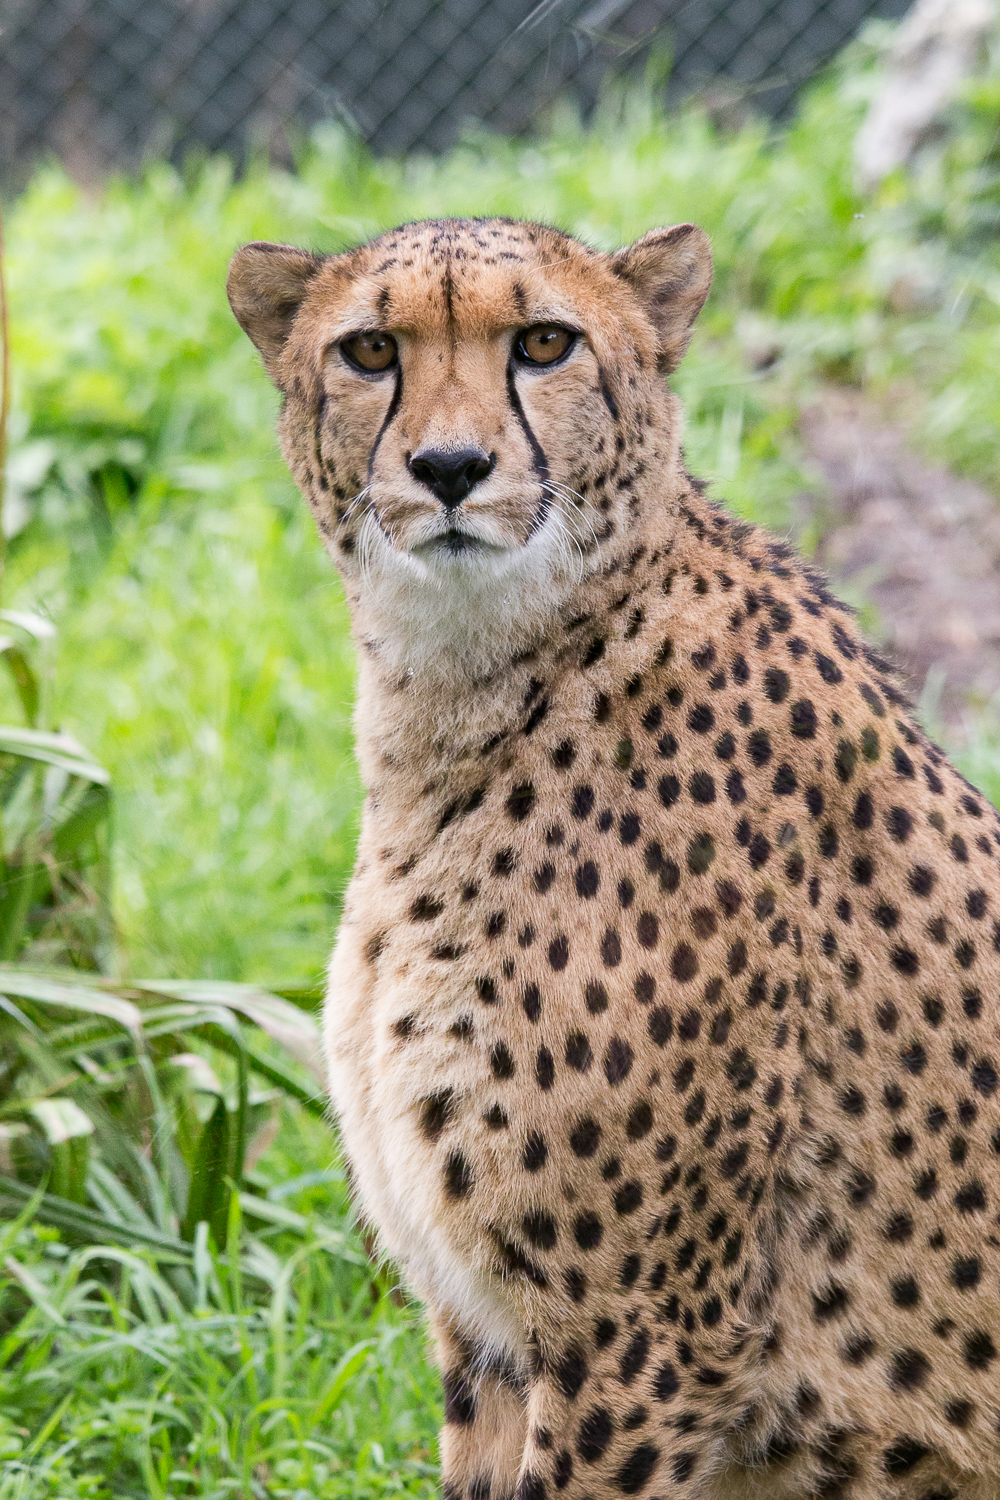 The cheetah stare